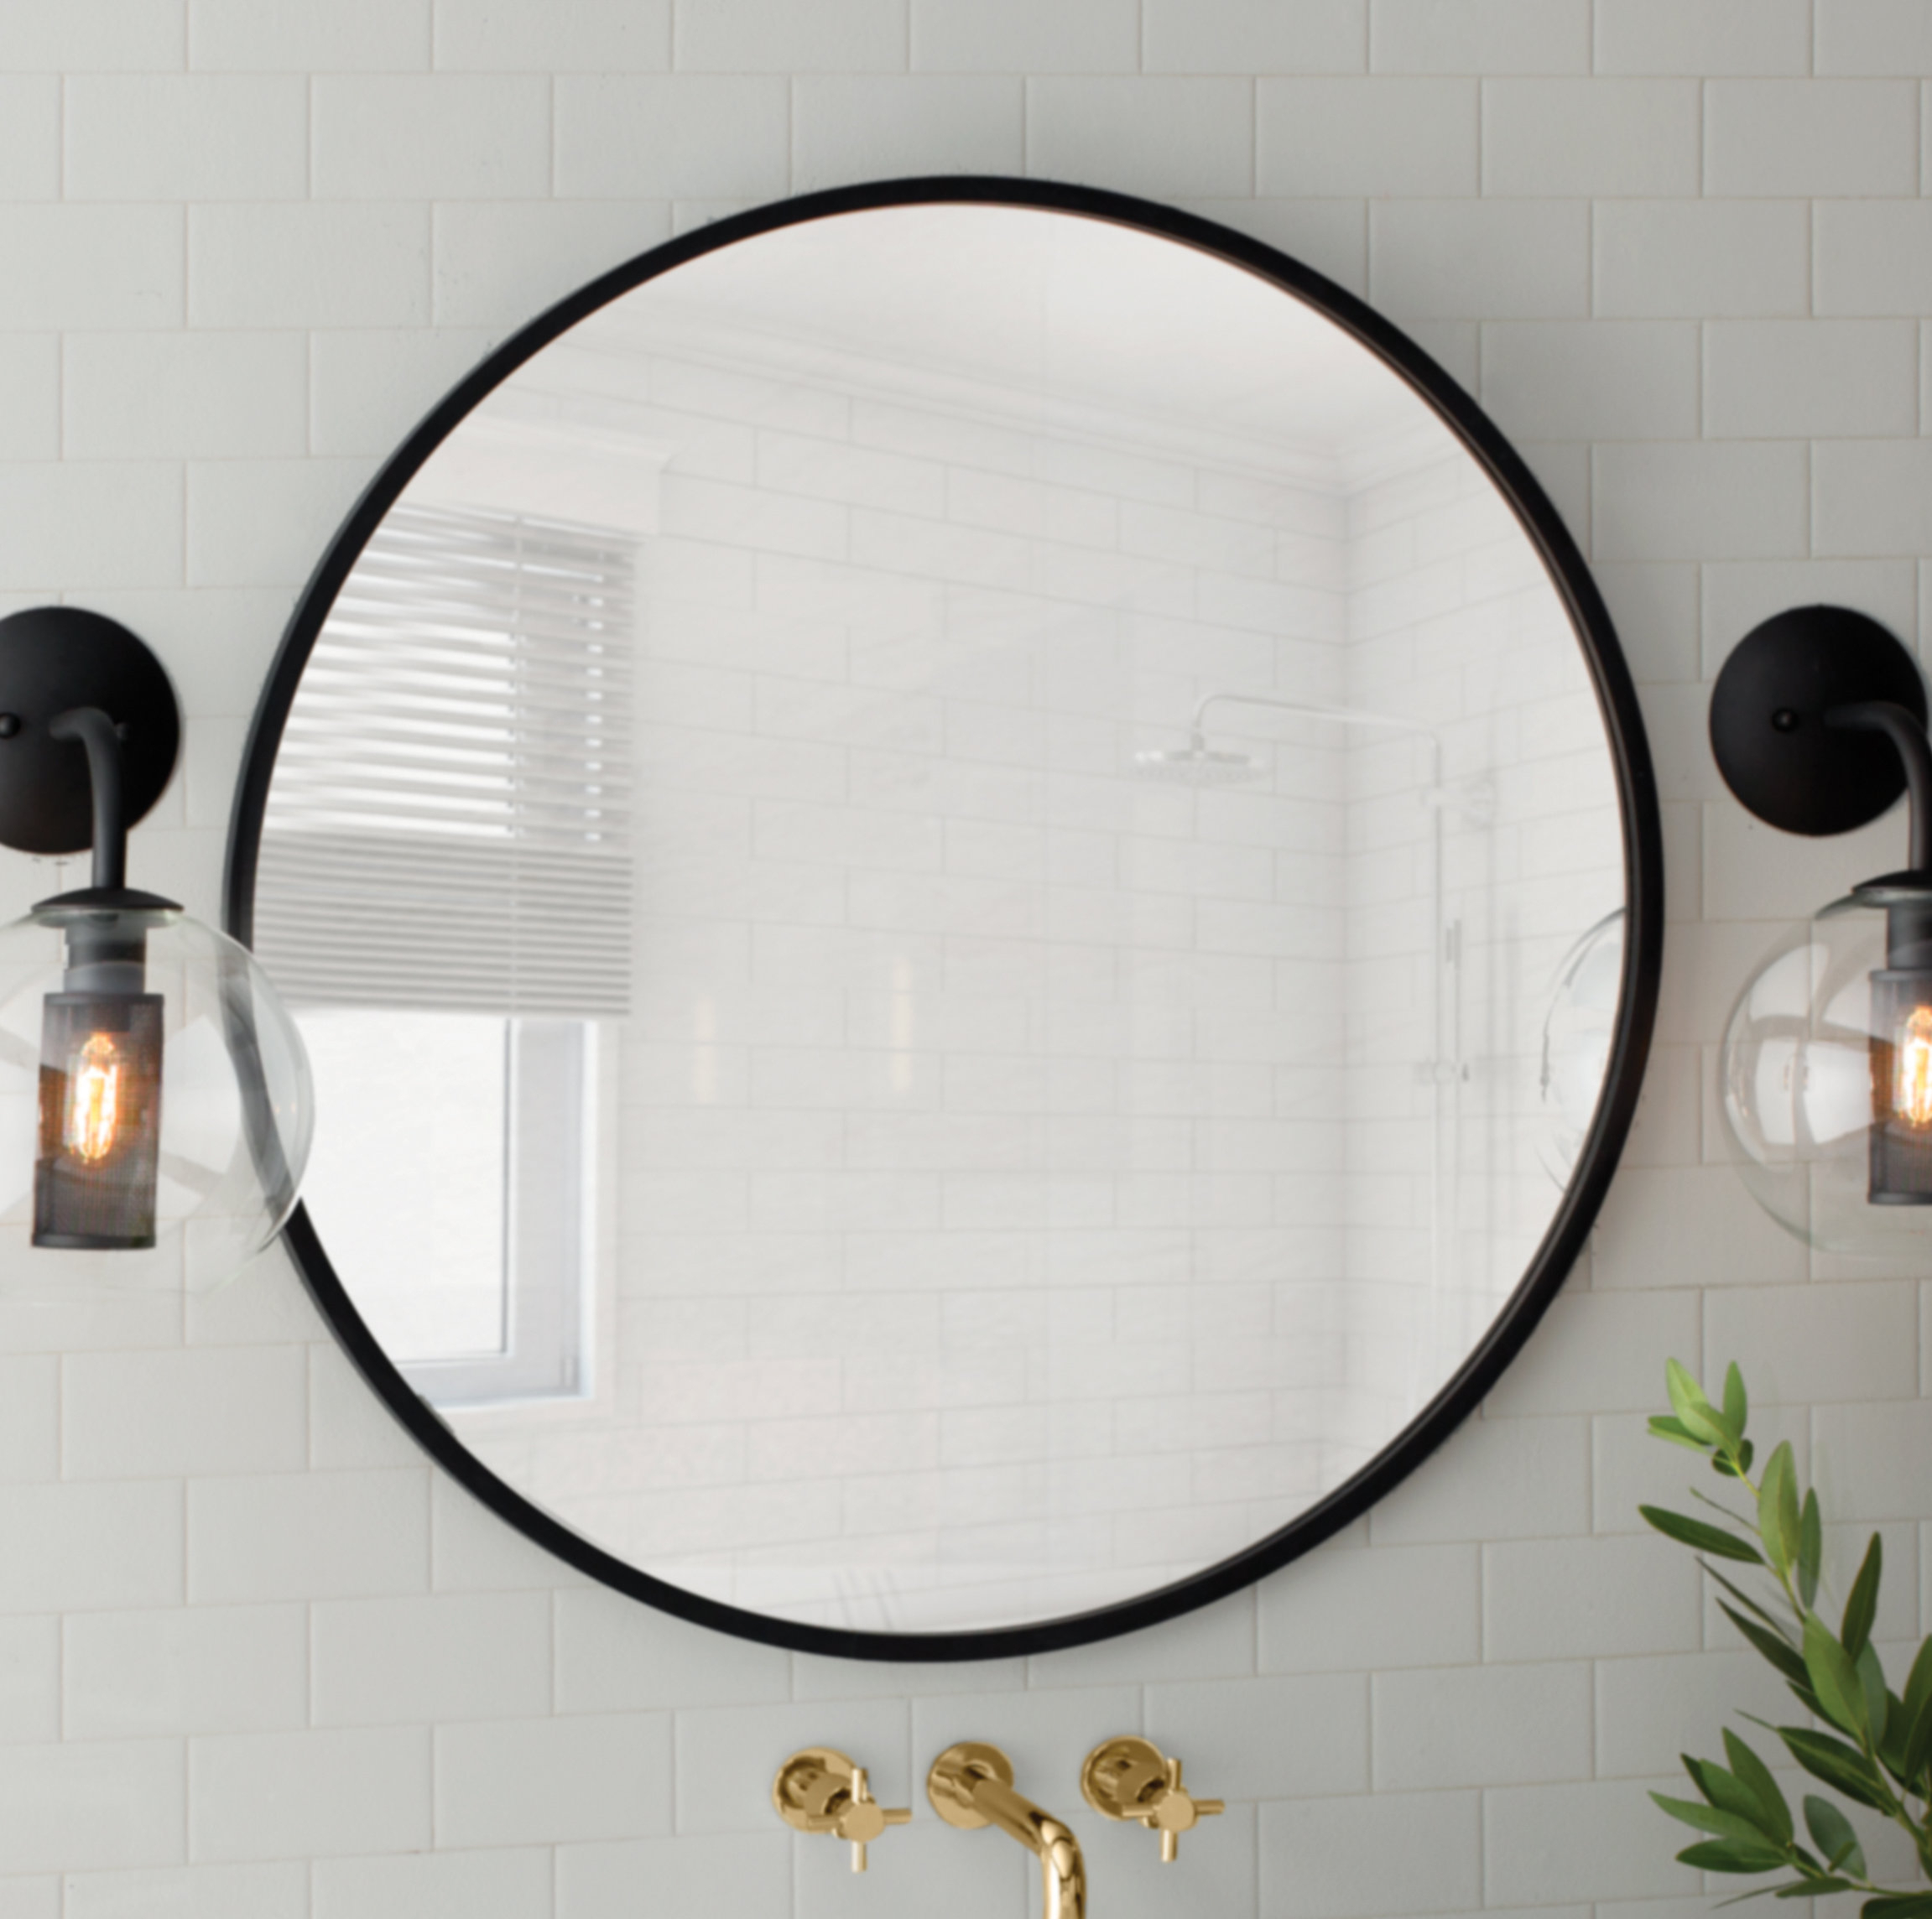 Modern Mirrors | Allmodern Intended For Derick Accent Mirrors (Image 15 of 20)